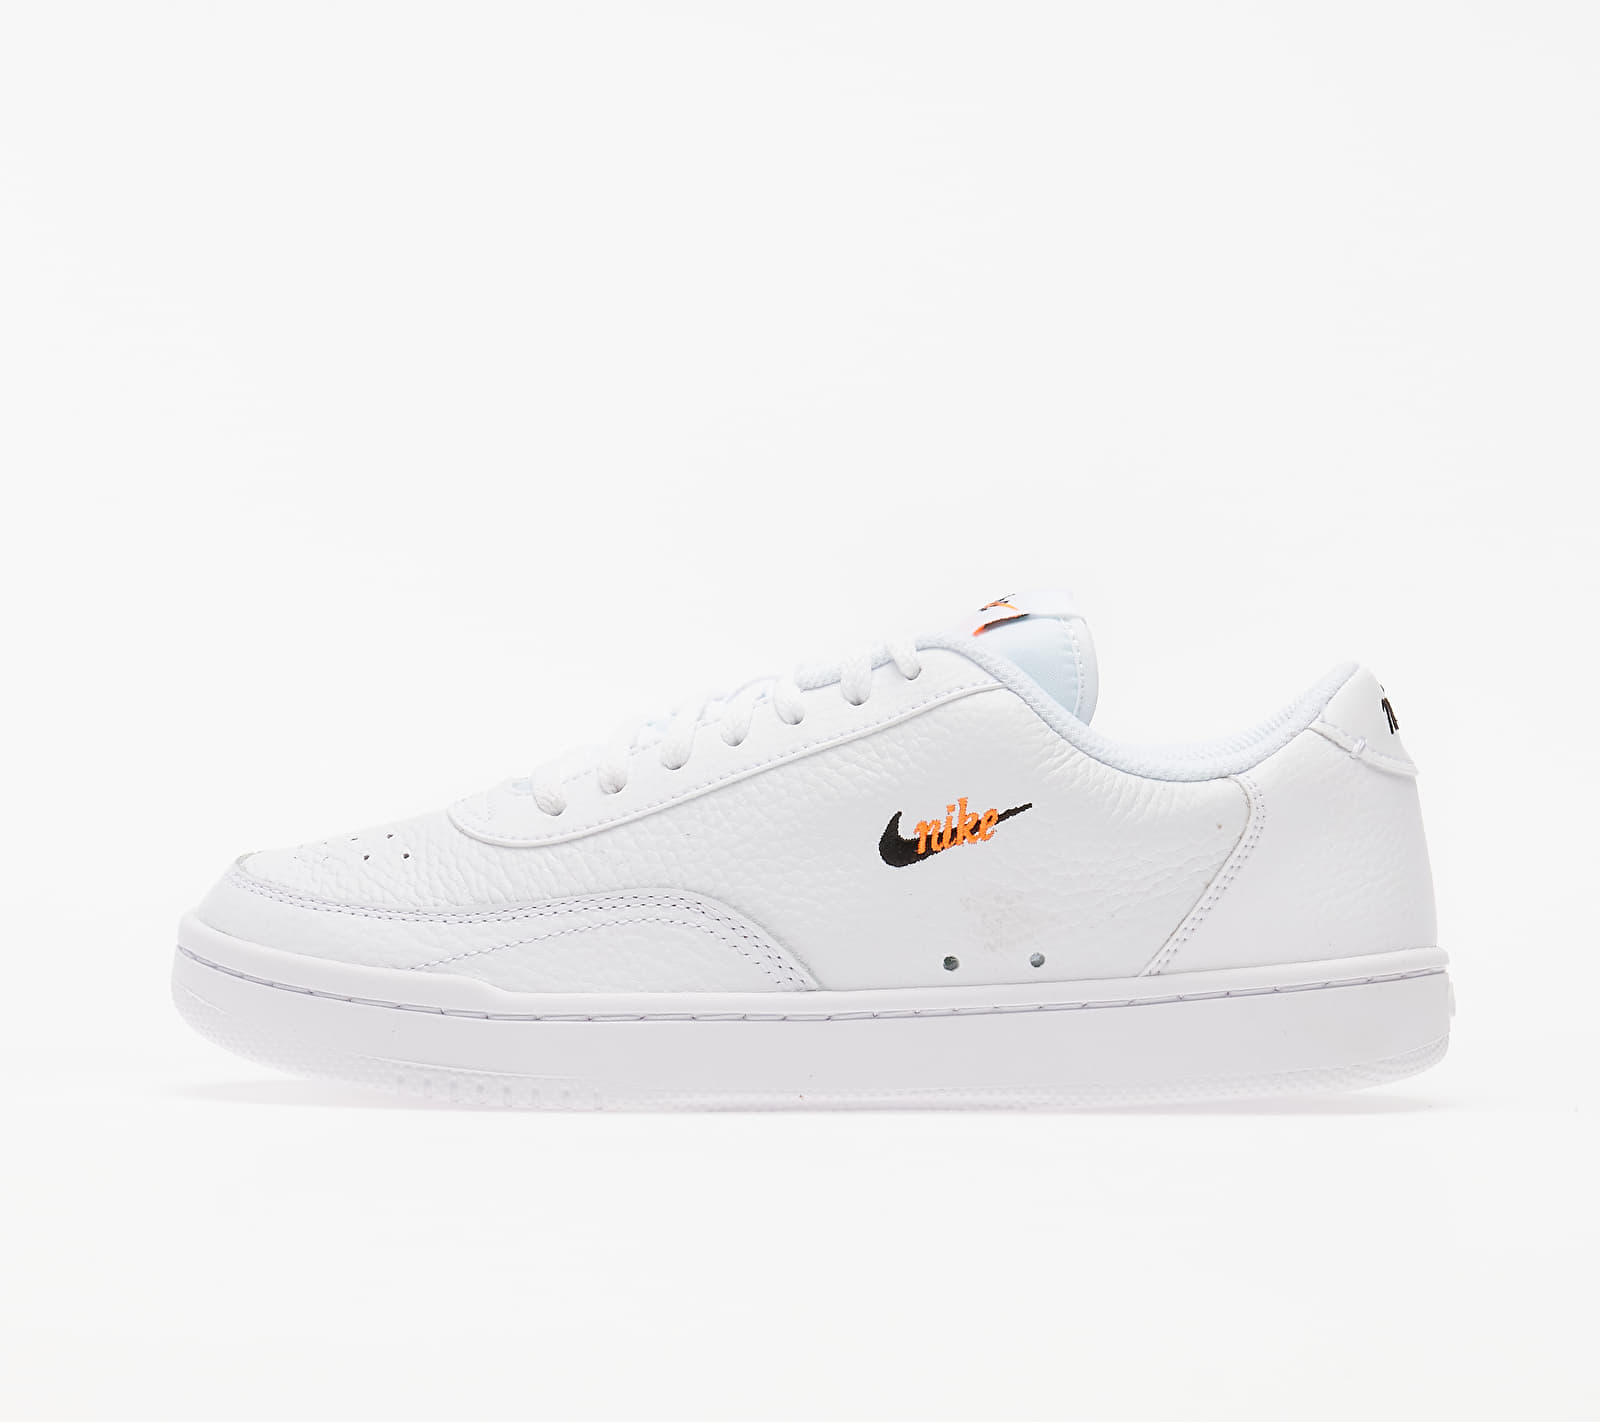 Nike Wmns Court Vintage Premium White/ Black-Total Orange EUR 40.5